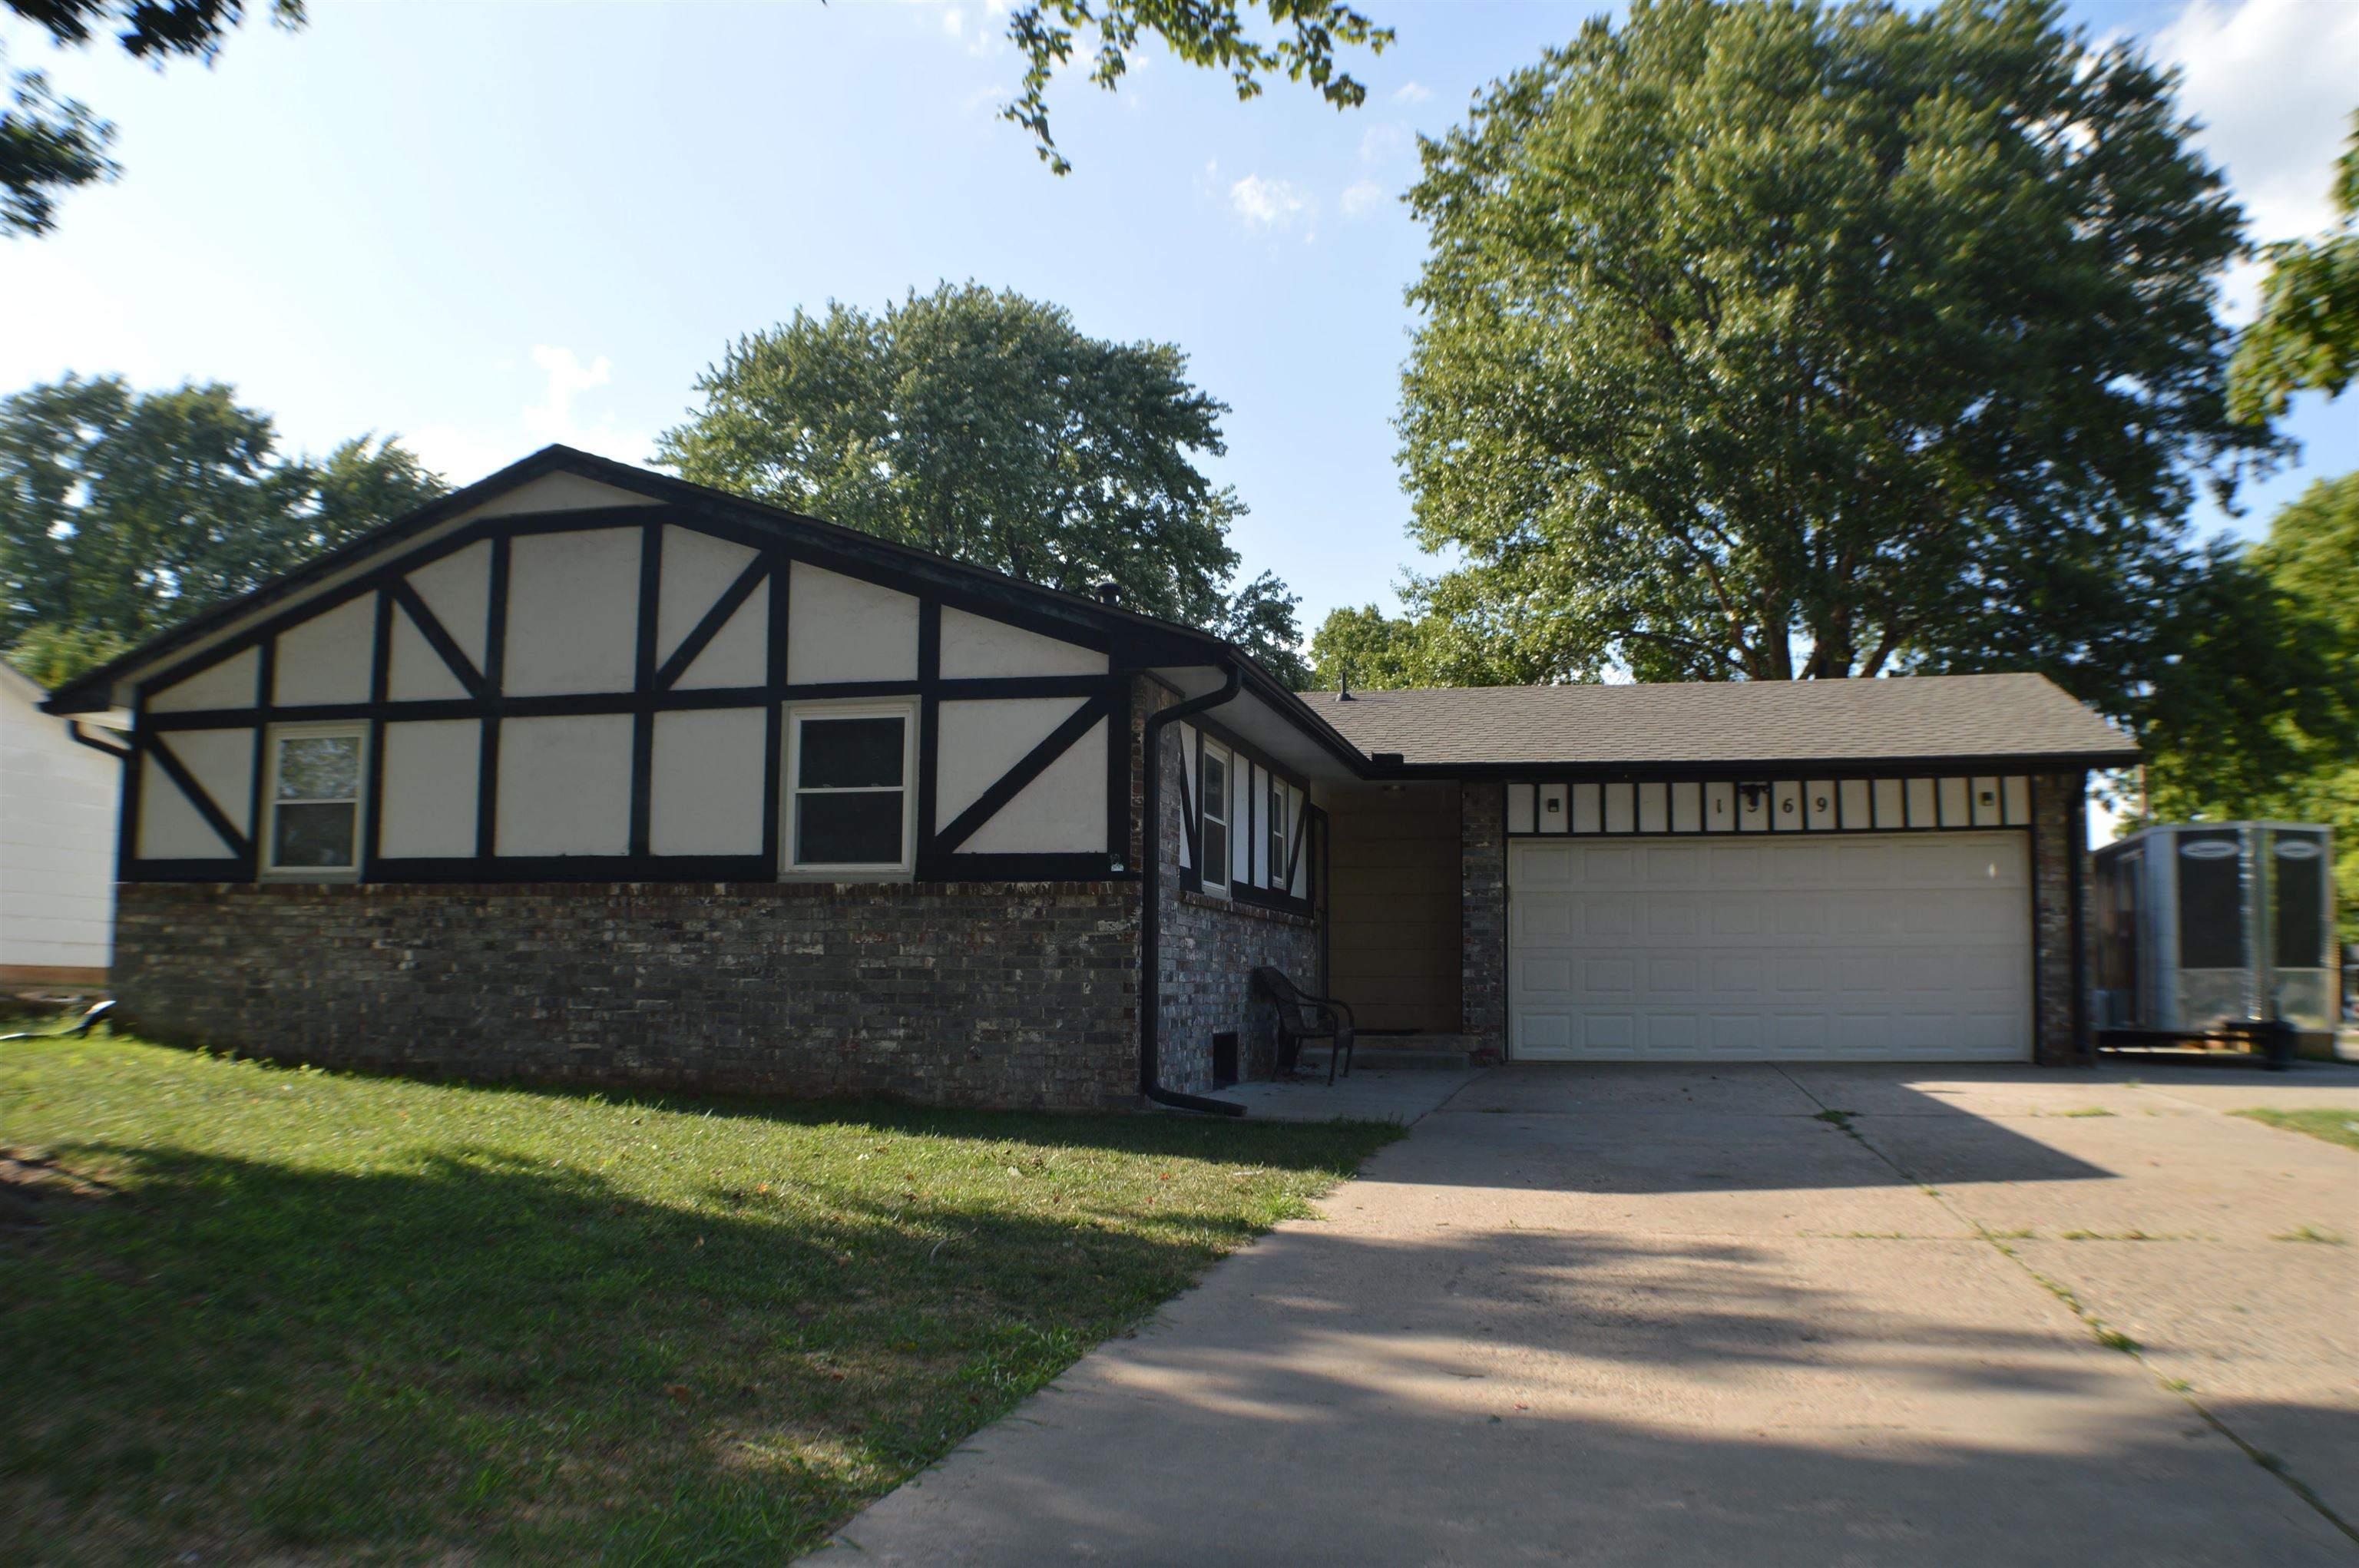 Backyard BBQ's & curb appeal!!!!  This 4 bedroom, 3 bath home on corner lot is perfect for entertain